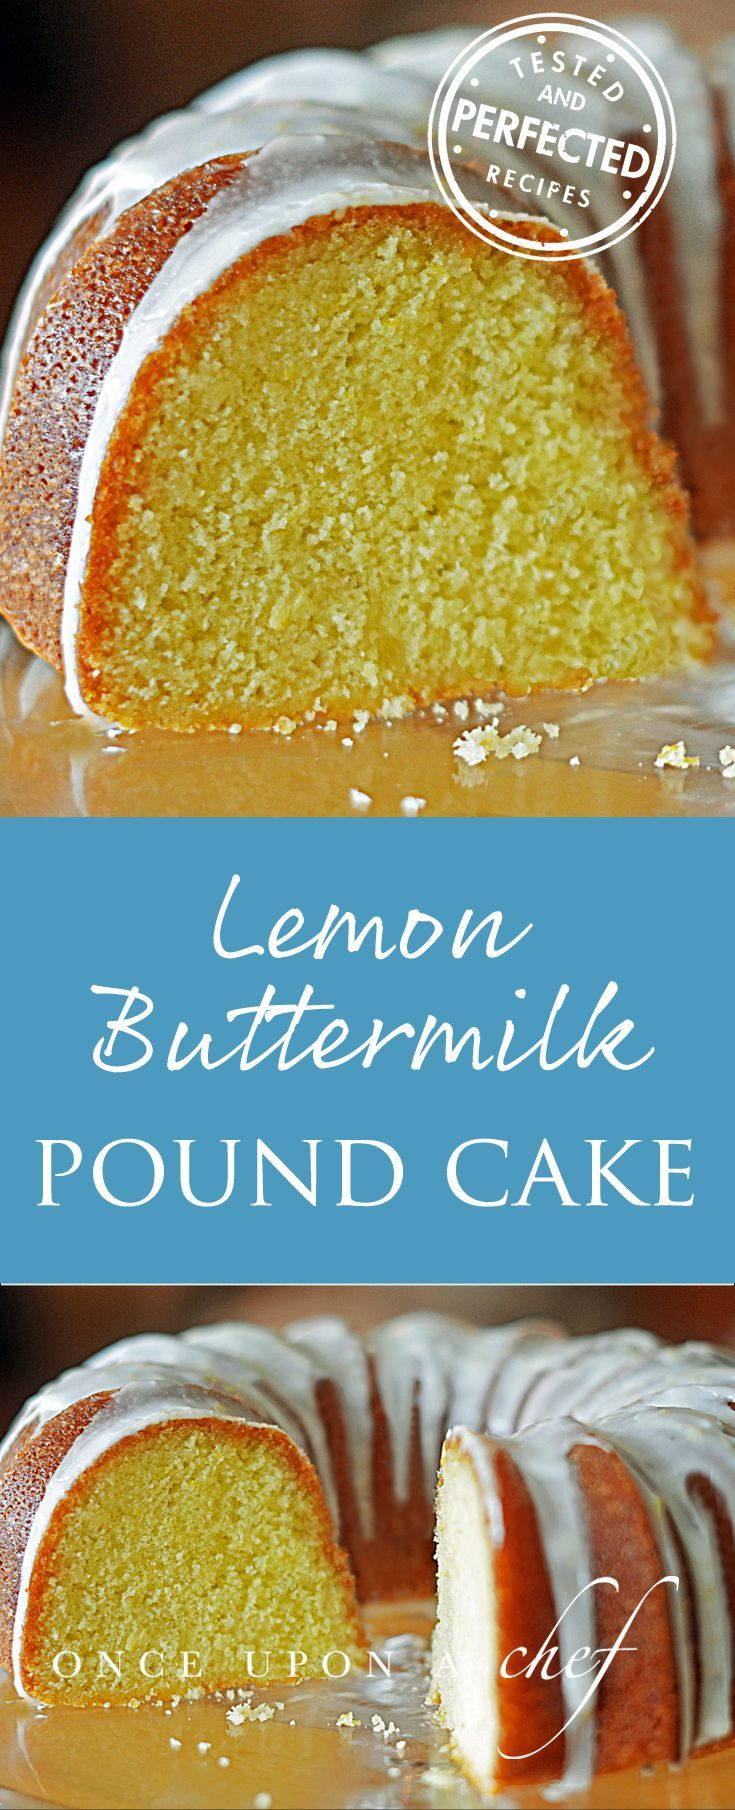 136 best Let them eat Cake images on Pinterest | Sweet recipes ...